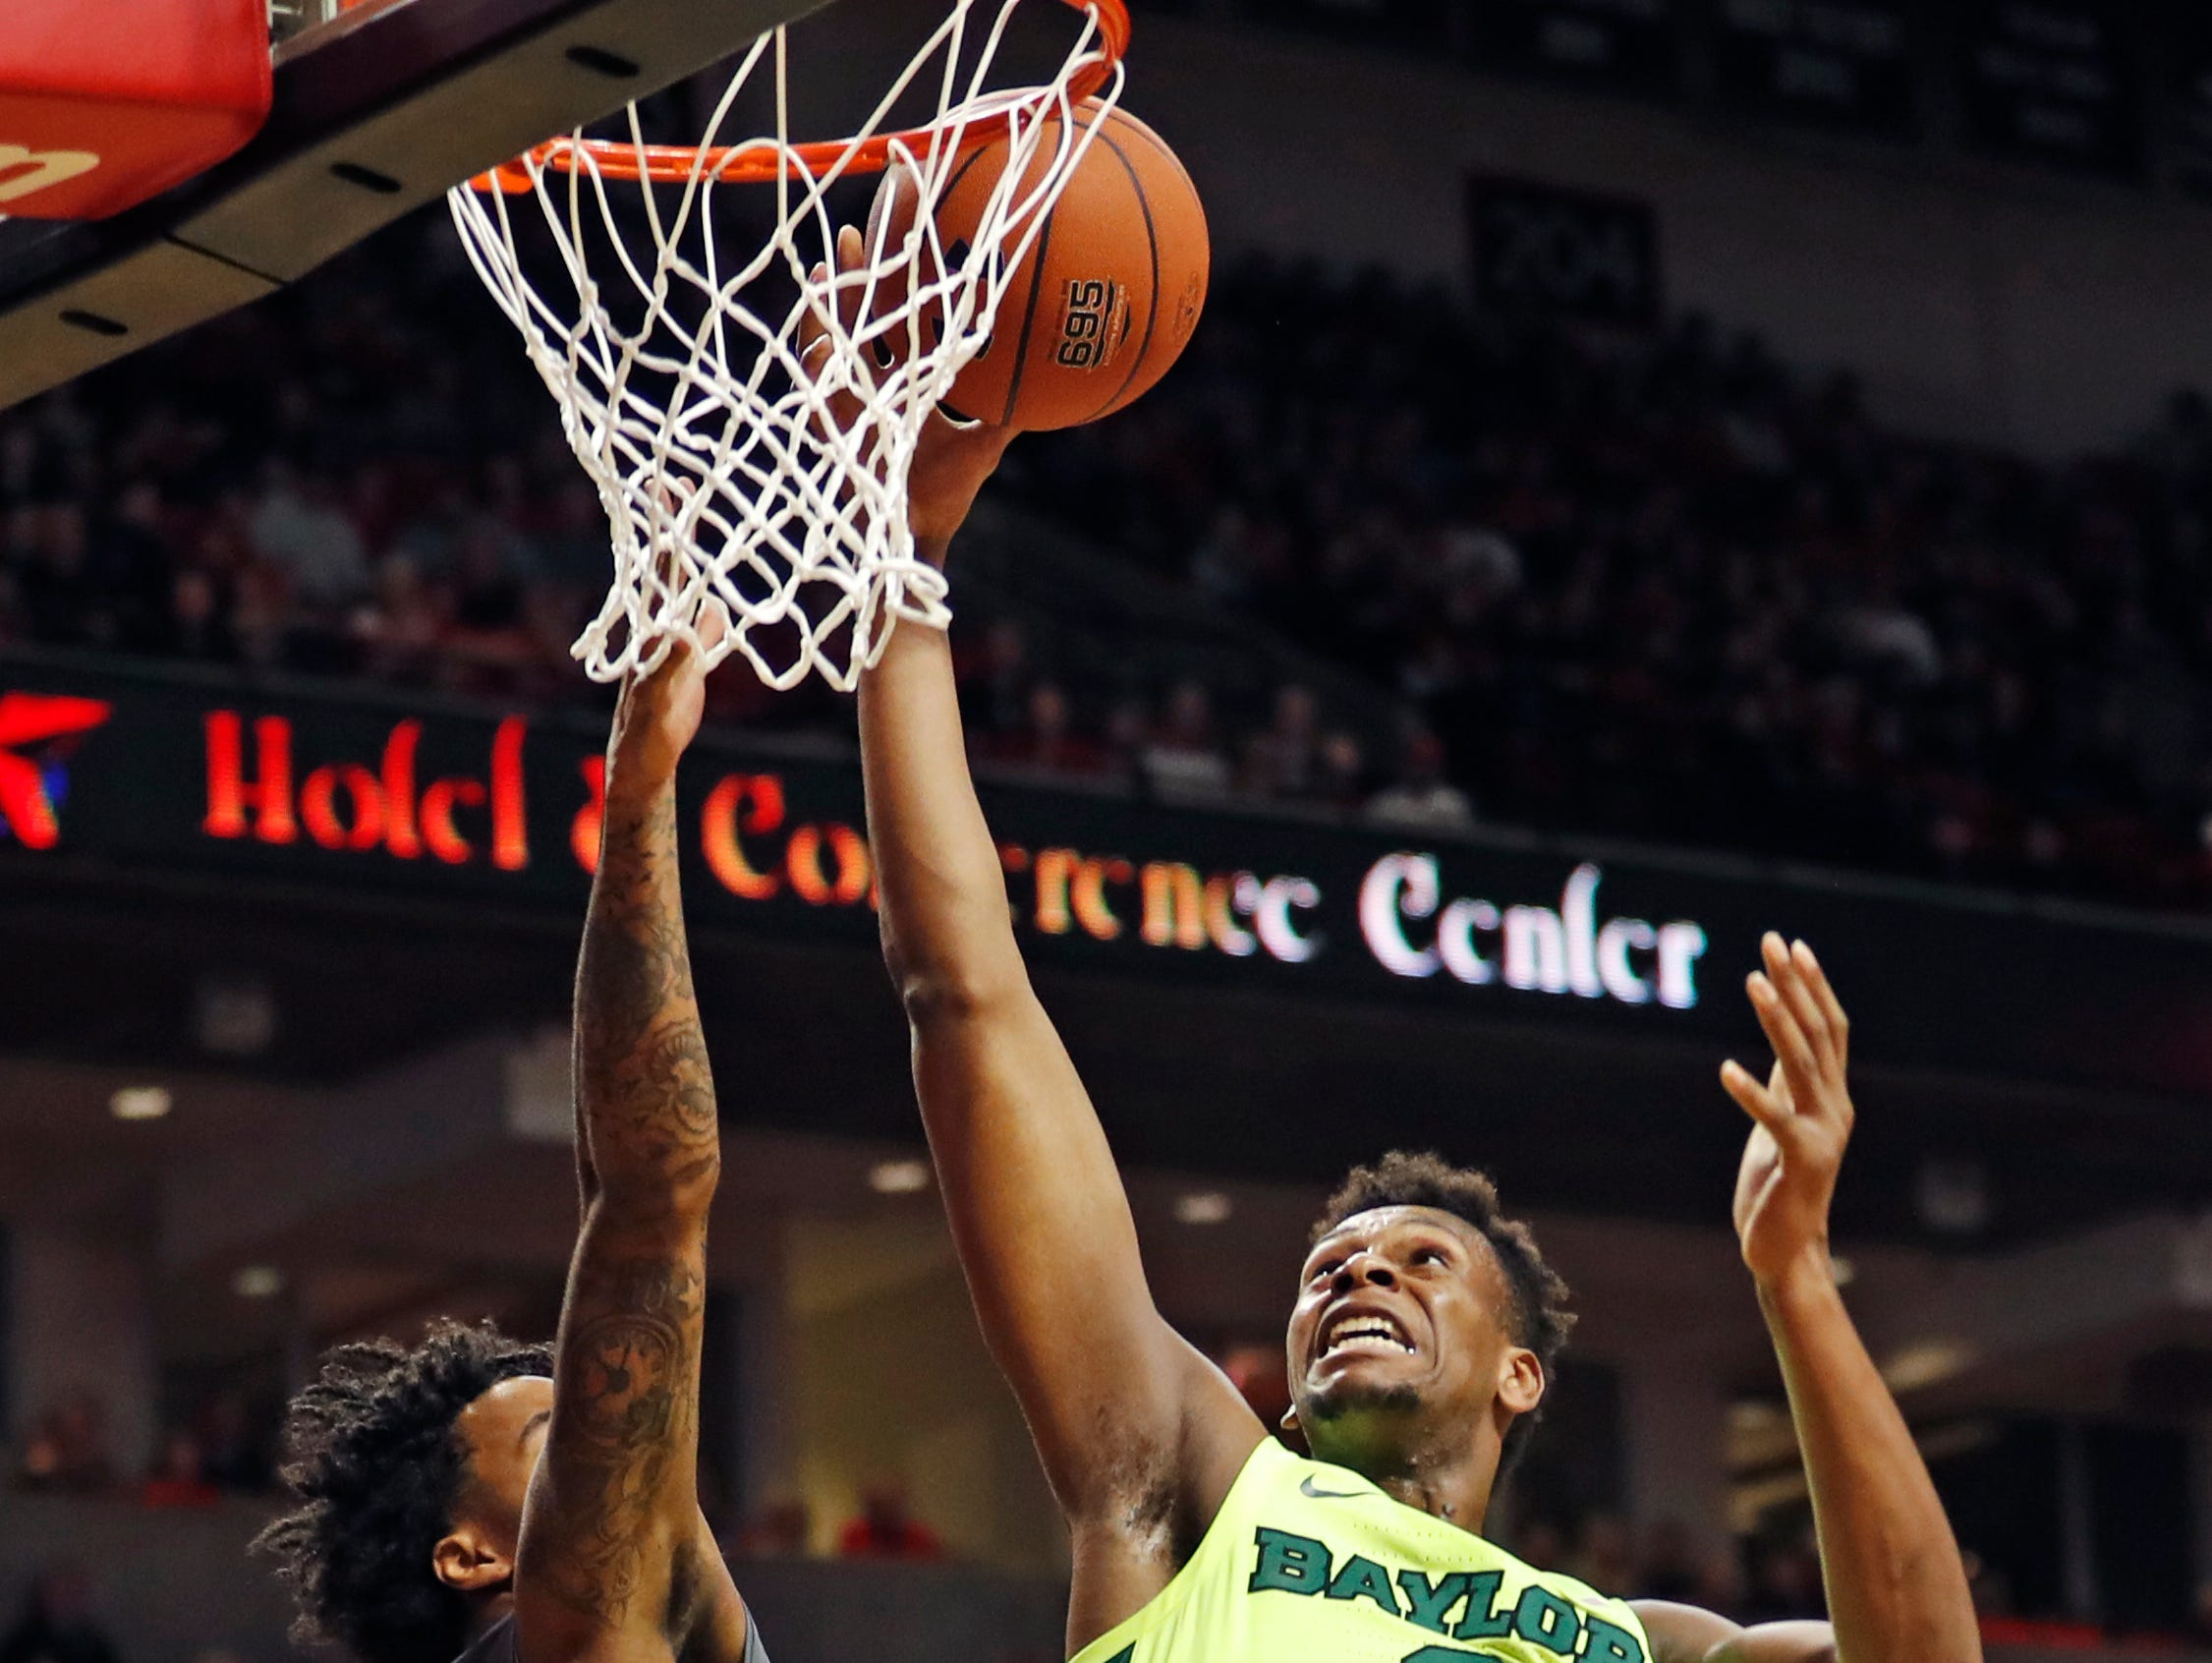 Texas Tech's Kyler Edwards (0) blocks a shot by Baylor's Flo Thamba (0) during the second half of an NCAA college basketball game Saturday, Feb. 16, 2019, in Lubbock, Texas. (AP Photo/Brad Tollefson)